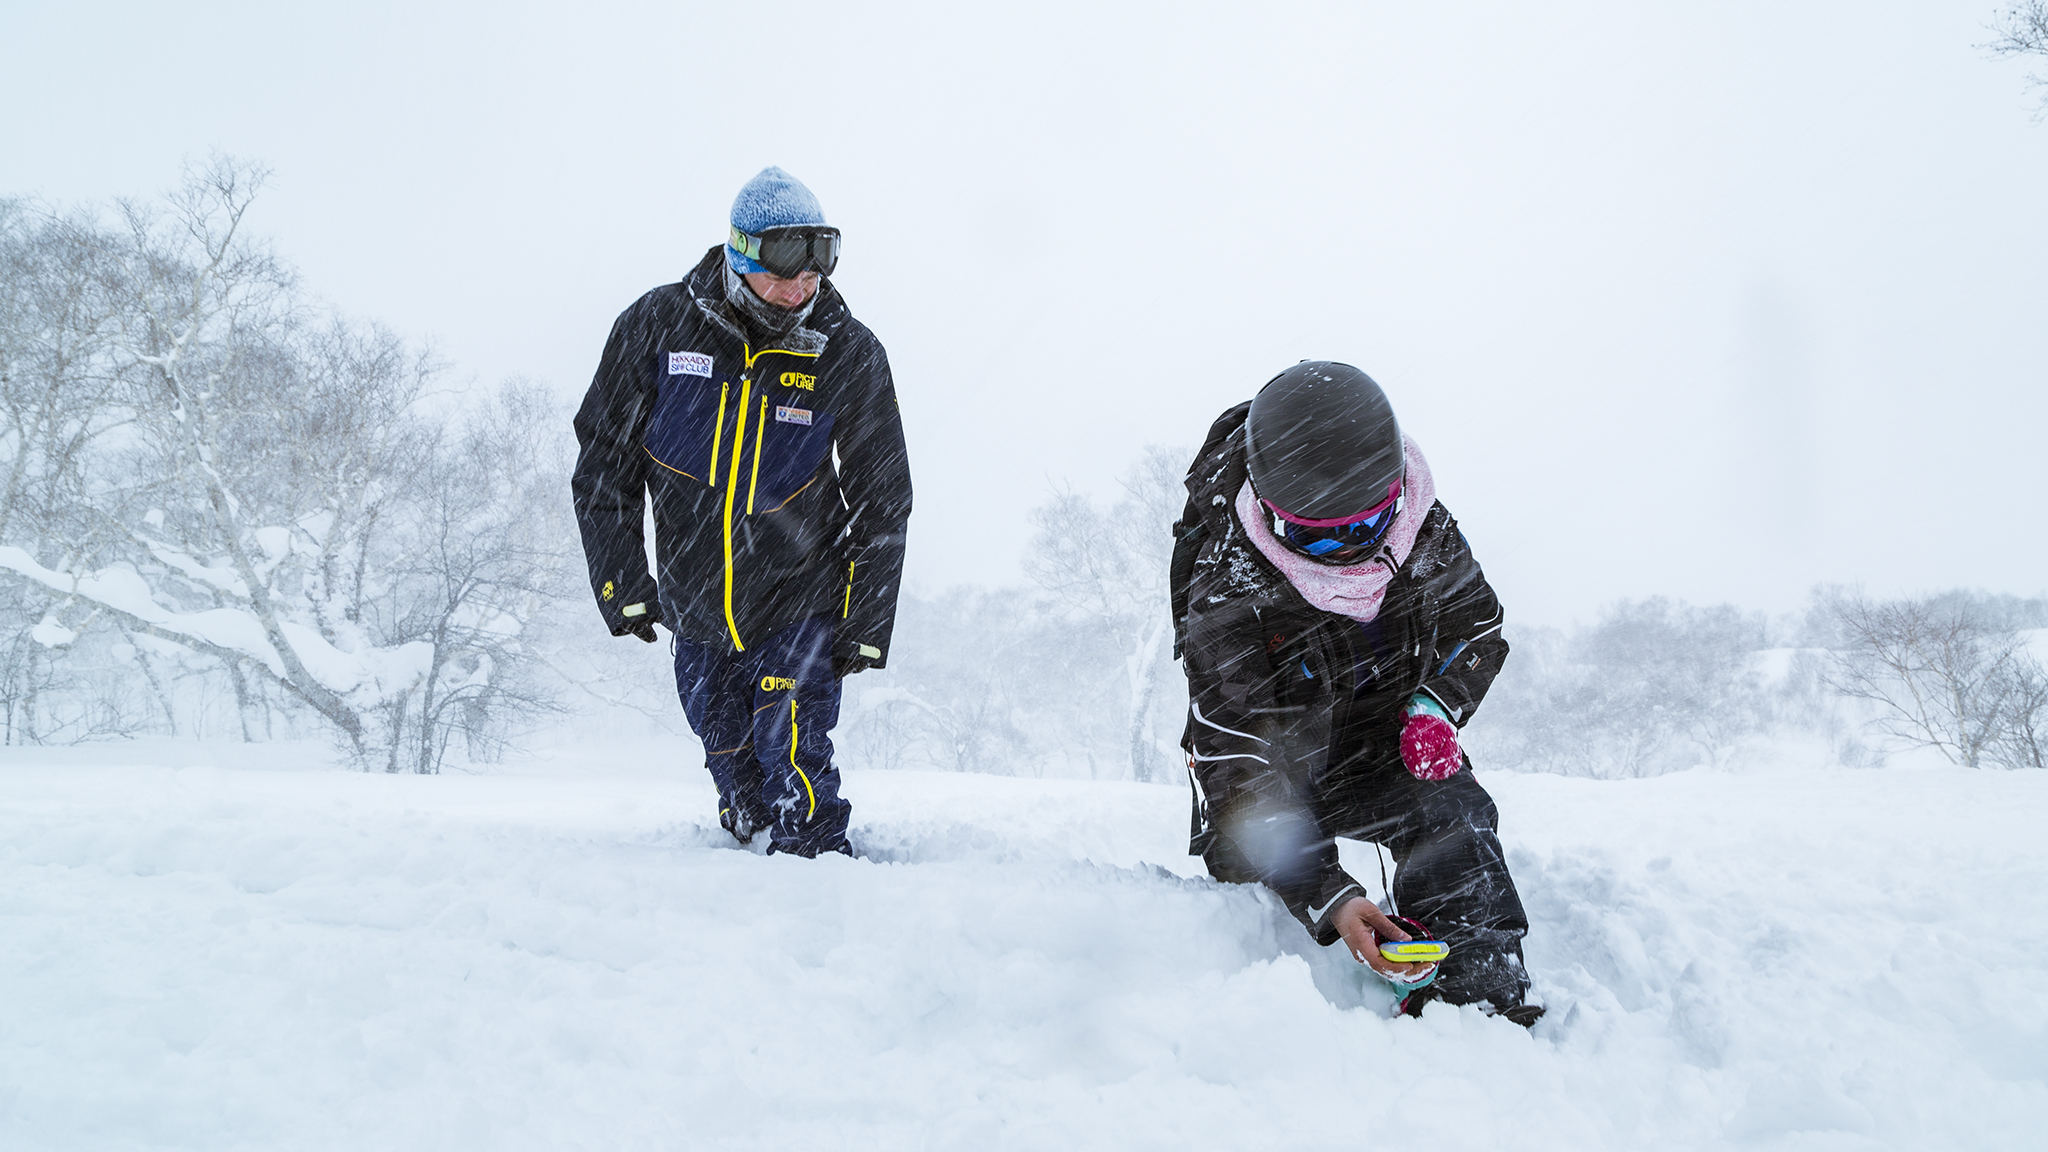 Be trained by a qualified guide to use avalanche equipment properly and stay safe on the mountain